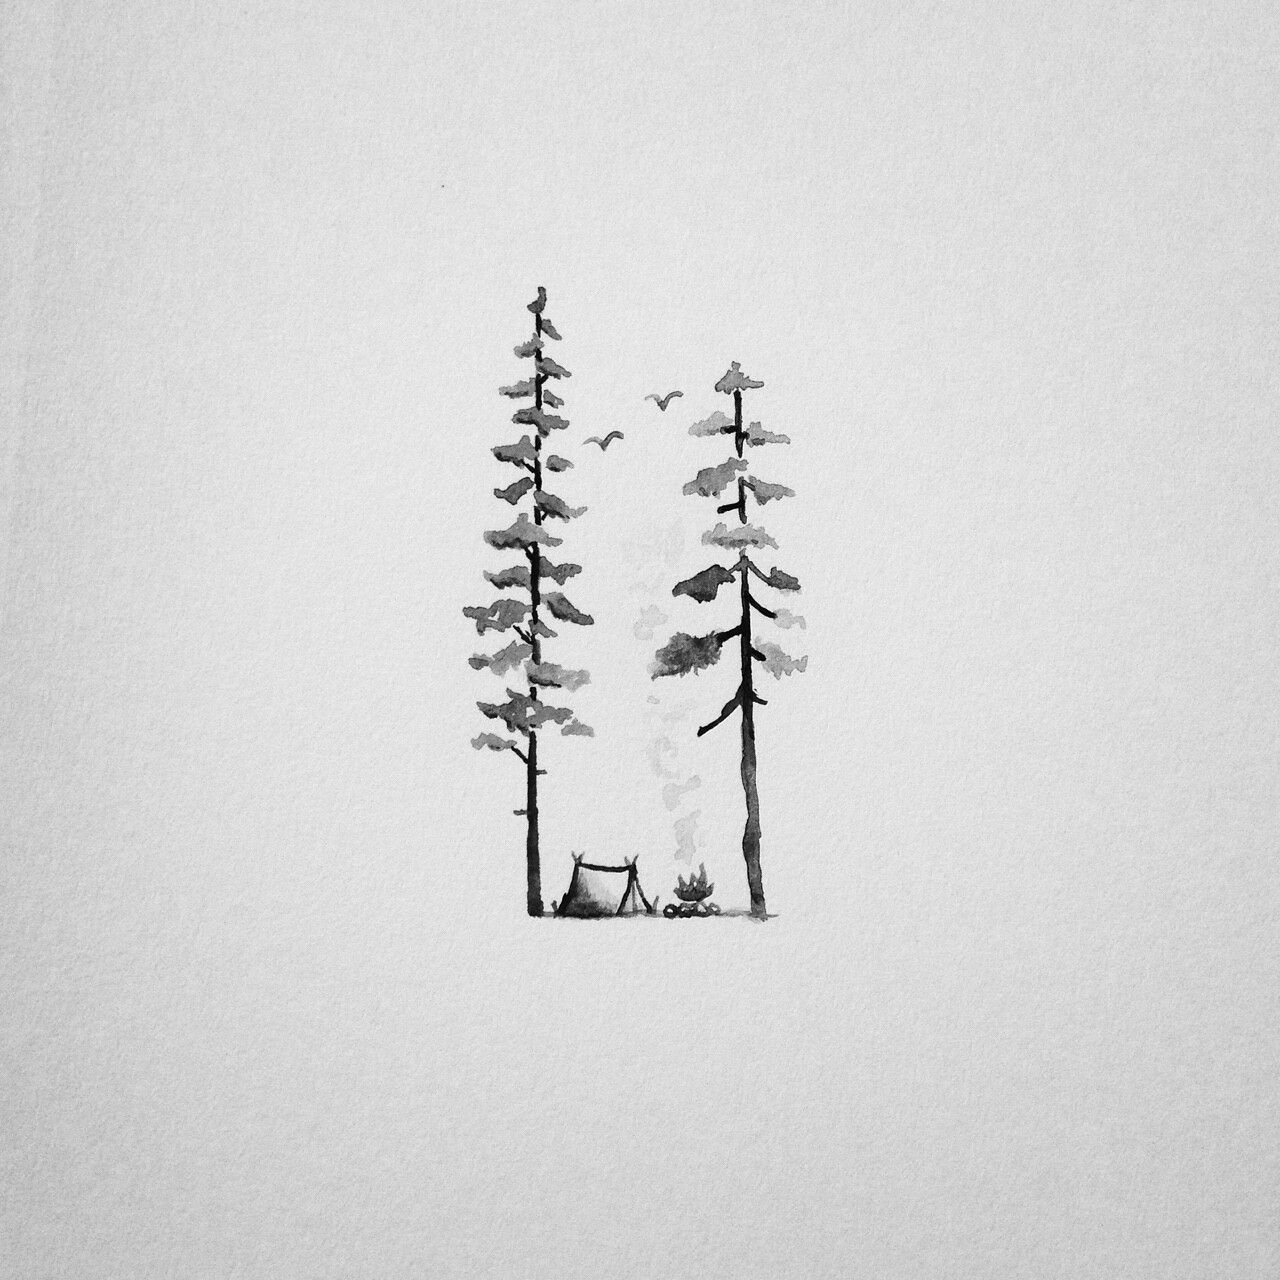 Easy And Simple Draw Or Tattoo Freedom, Nature, Trees And